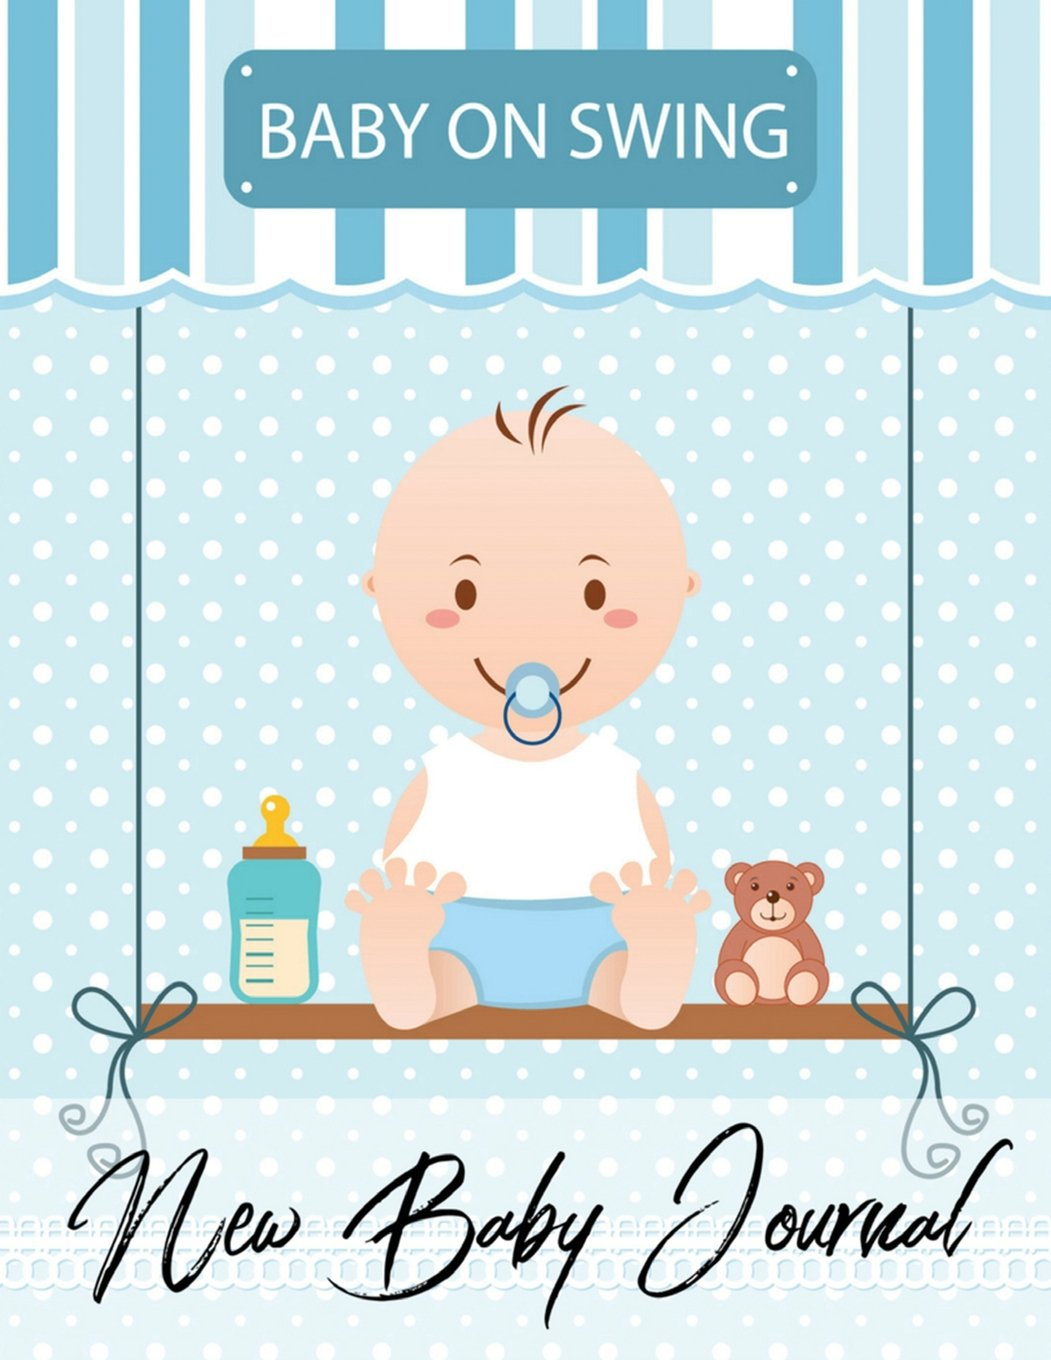 New Baby Journal: Baby On Swing Design Log Book for Baby Activity : Eat , Sleep and Poop and Record Baby Immunizations and Medication (Baby Health Record Journal Book) (Volume 94) pdf